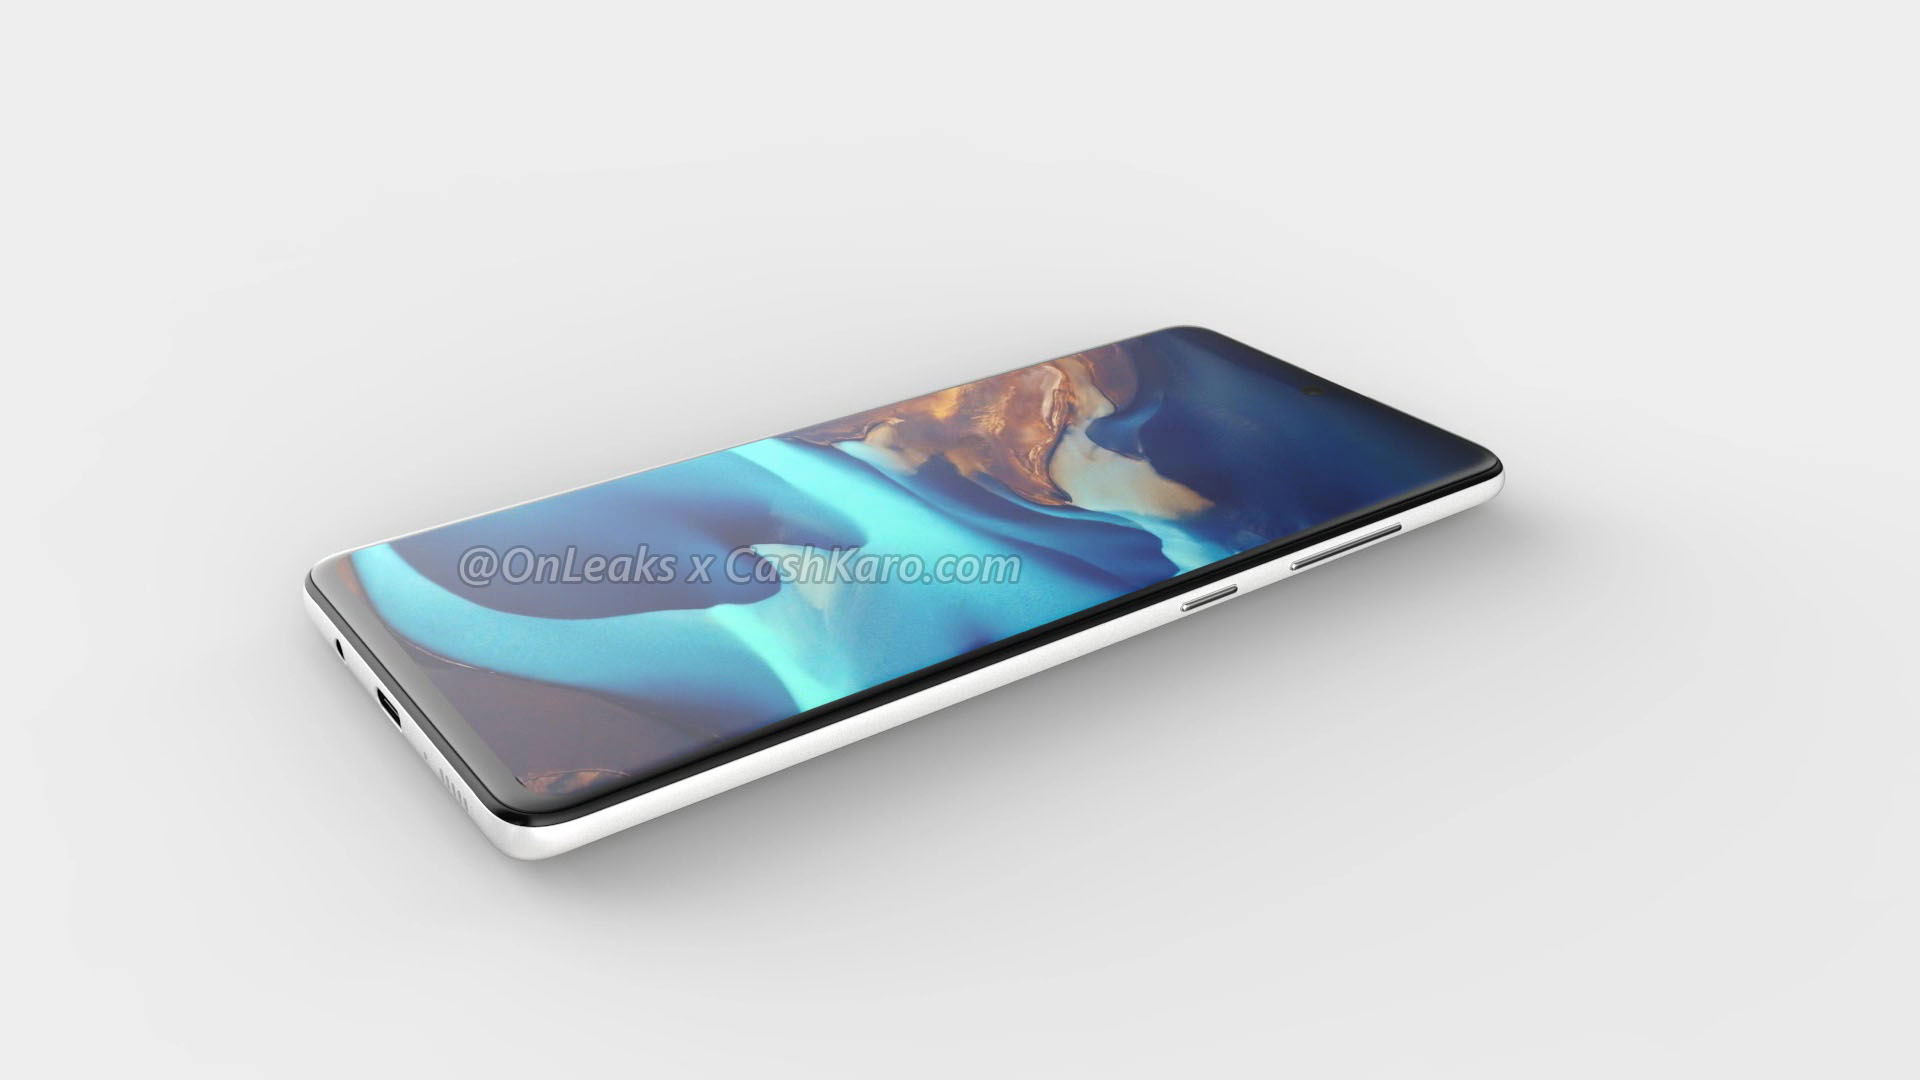 Samsung Galaxy A71 Renders Surfaces Online With 6.7-inch AMOLED Display